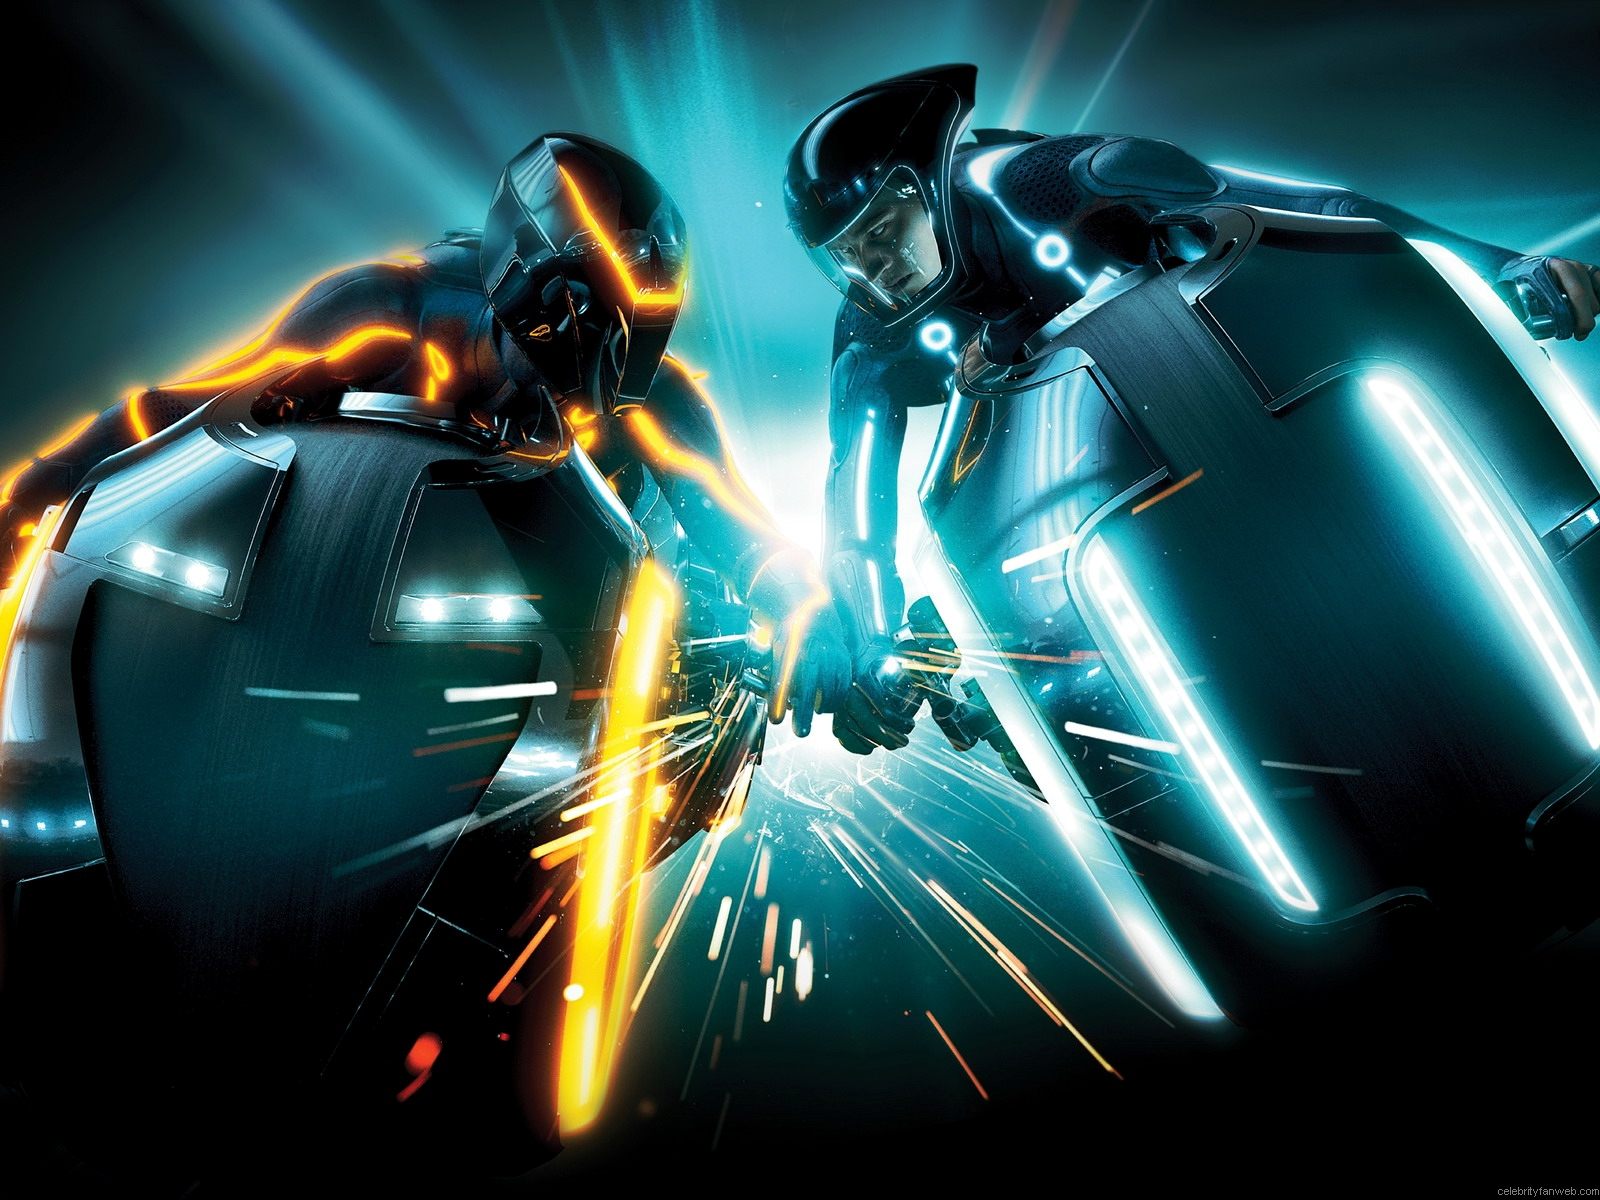 Tron Legacy Wallpapers HD 1600x1200